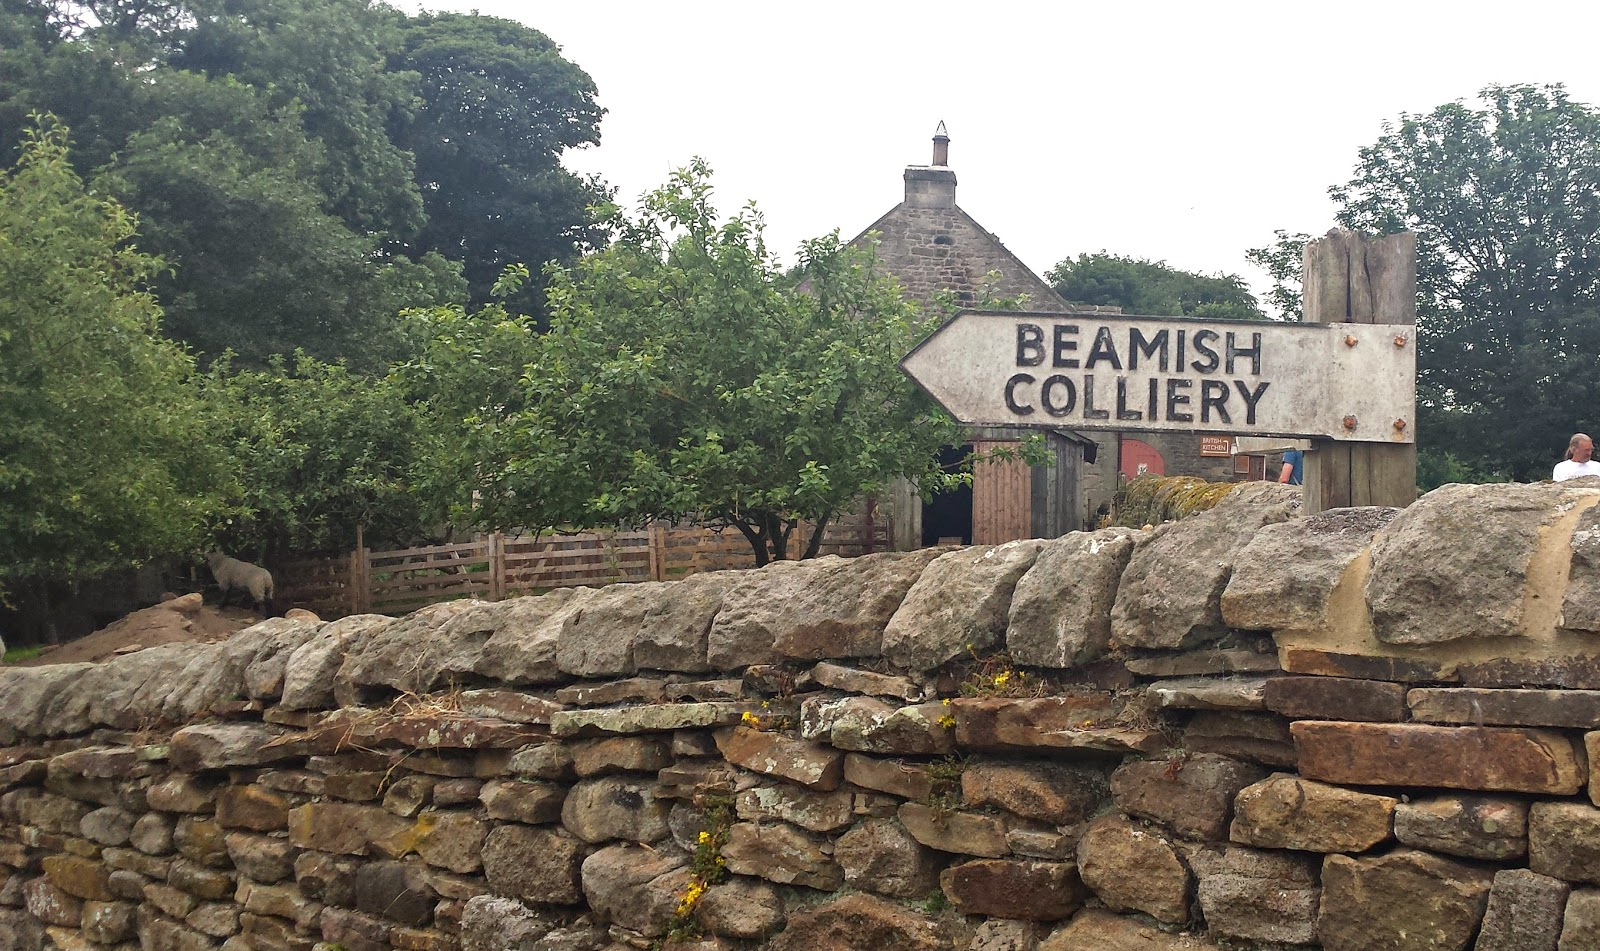 A Trip to Beamish